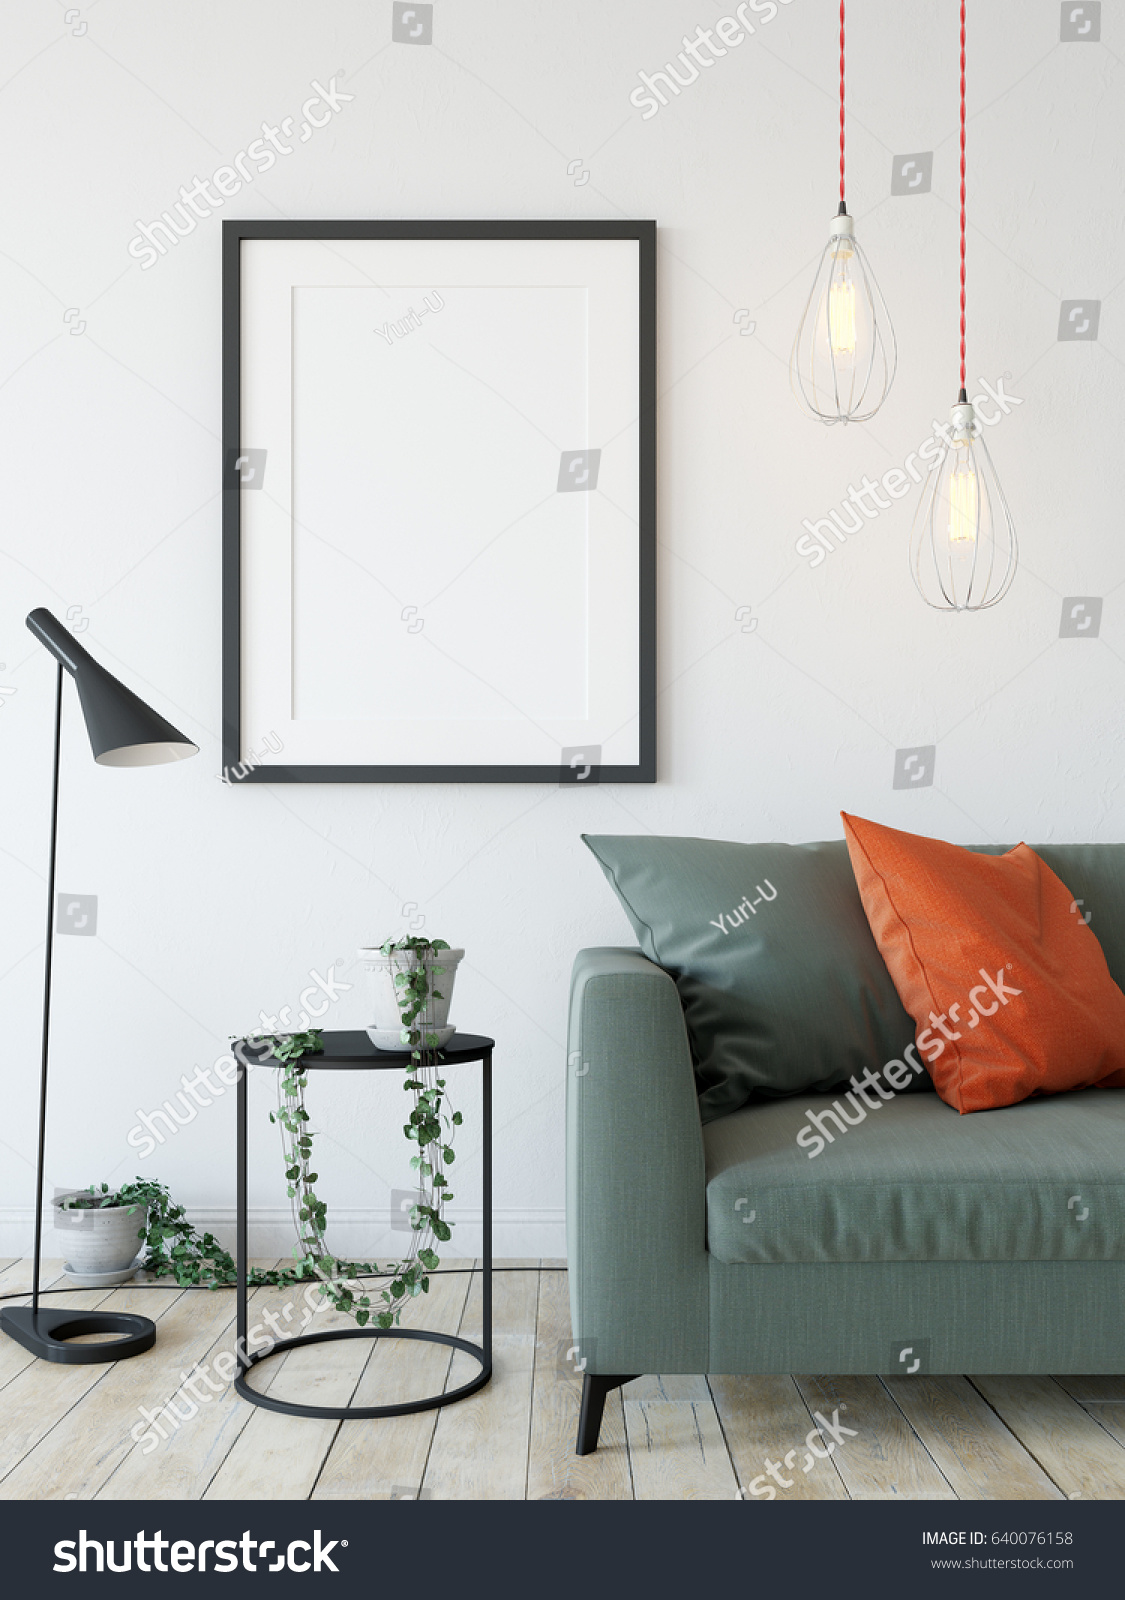 living room posters. mock up posters in living room interior  Interior scandinavian style 3d rendering Mock Posters Living Room Stock Illustration